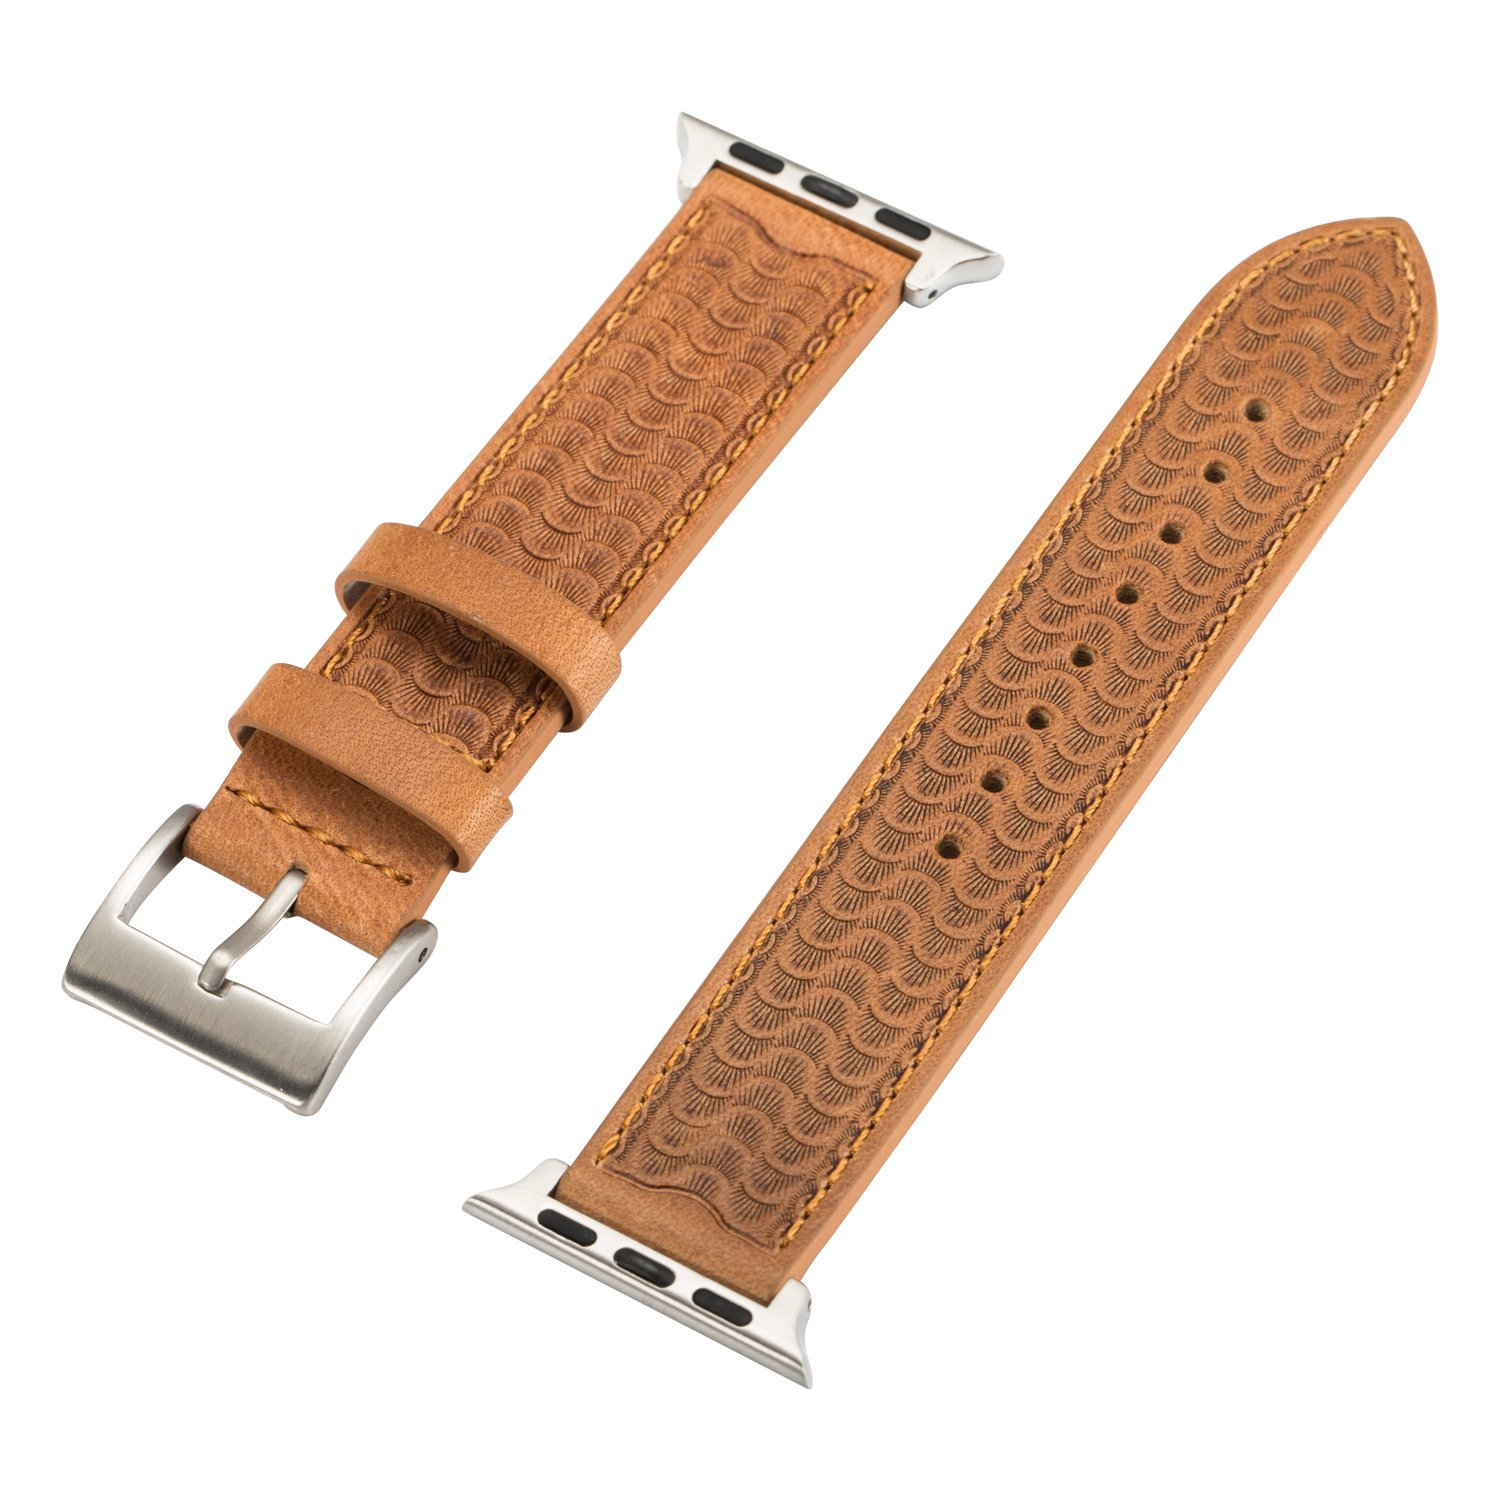 NUOYOU Apple Watch band 42mm for iWatch 42mm, Genuine Leather Relief iWatch Band Strap Stainless Metal Buckle for Apple Watch Series 3, Series 2, Series 1, Sport & Edition (Khaki,42mm)